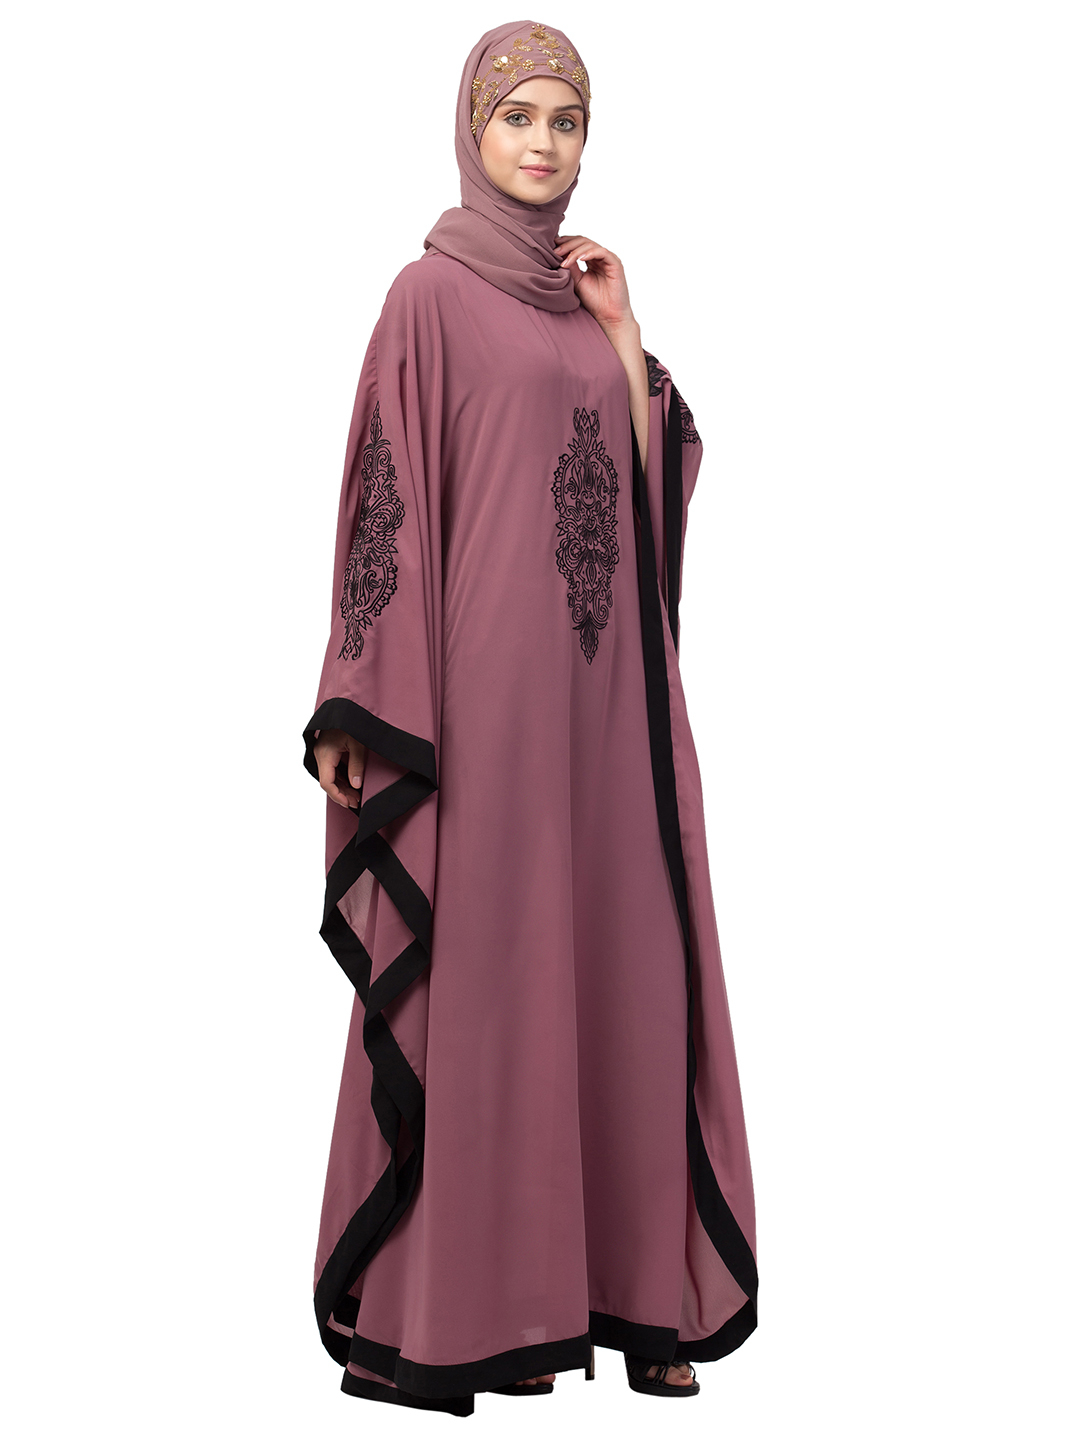 Premium Shine Nida Kaftan With Center And Sleeve Embroidery Contrast In Mauve Pink And Black